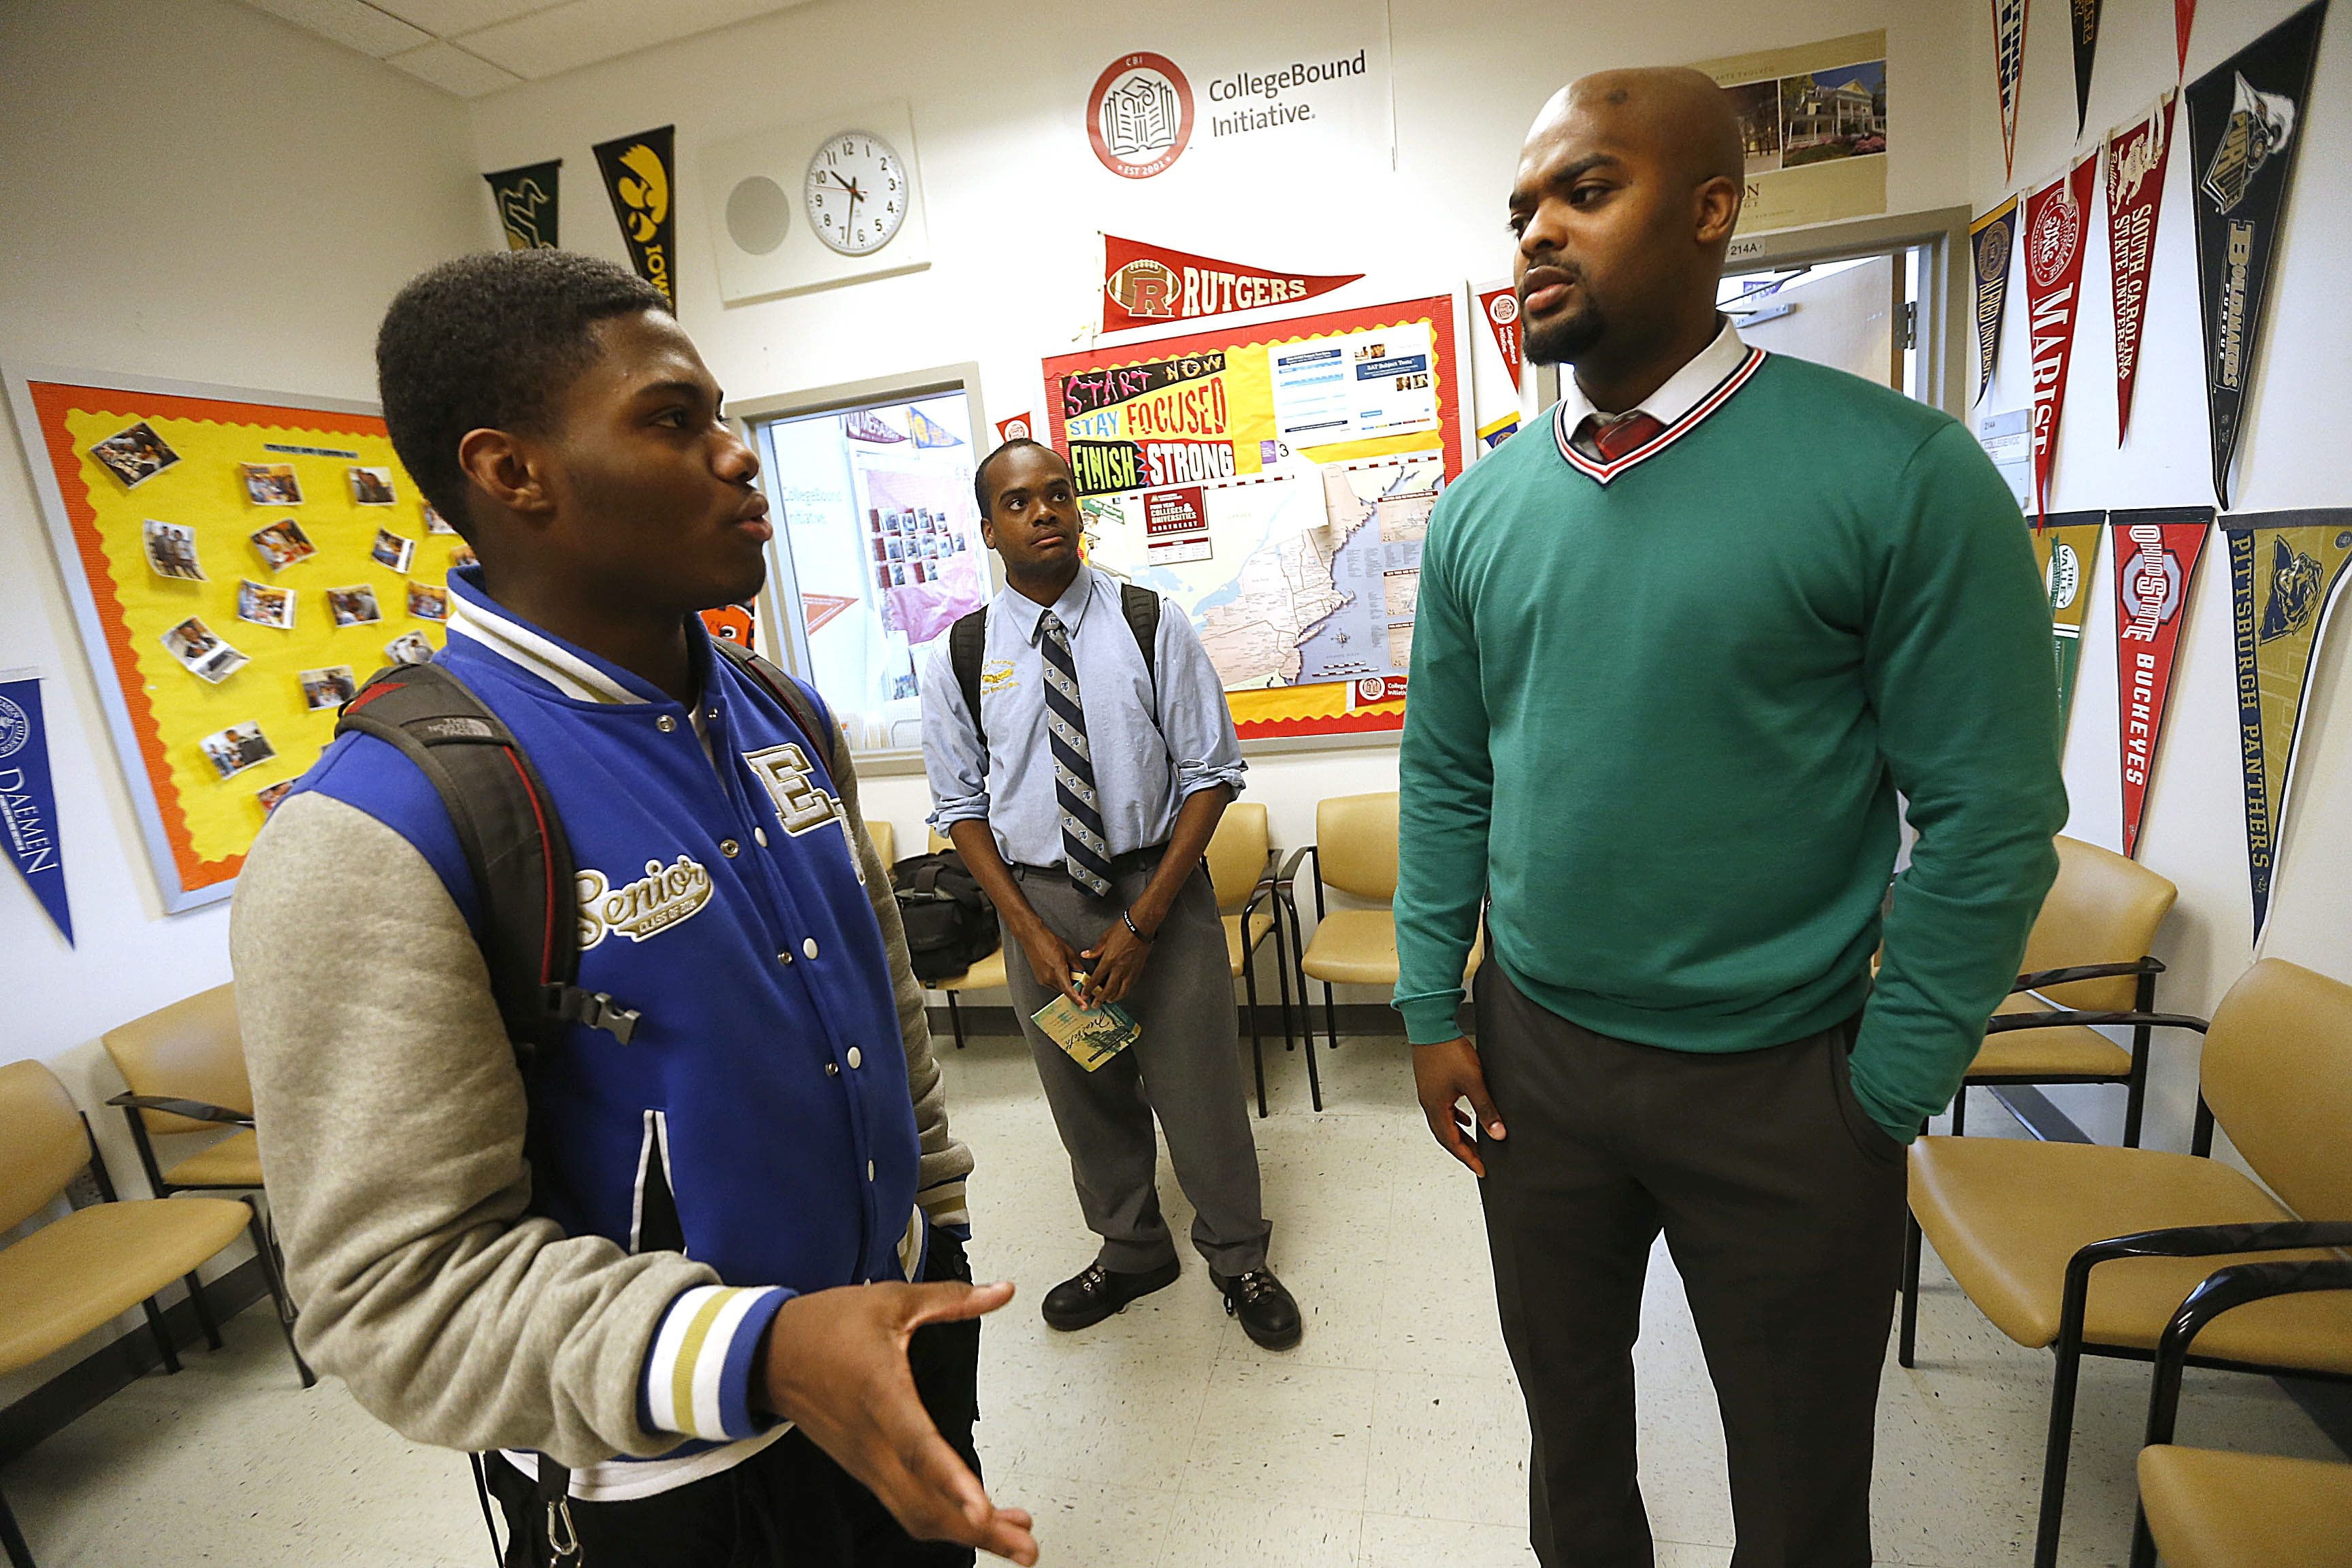 College counseling director Kareem Donaldson, right, discusses the transition from high school to college with Roshane Gray, left, and Zimba Hamm, center.